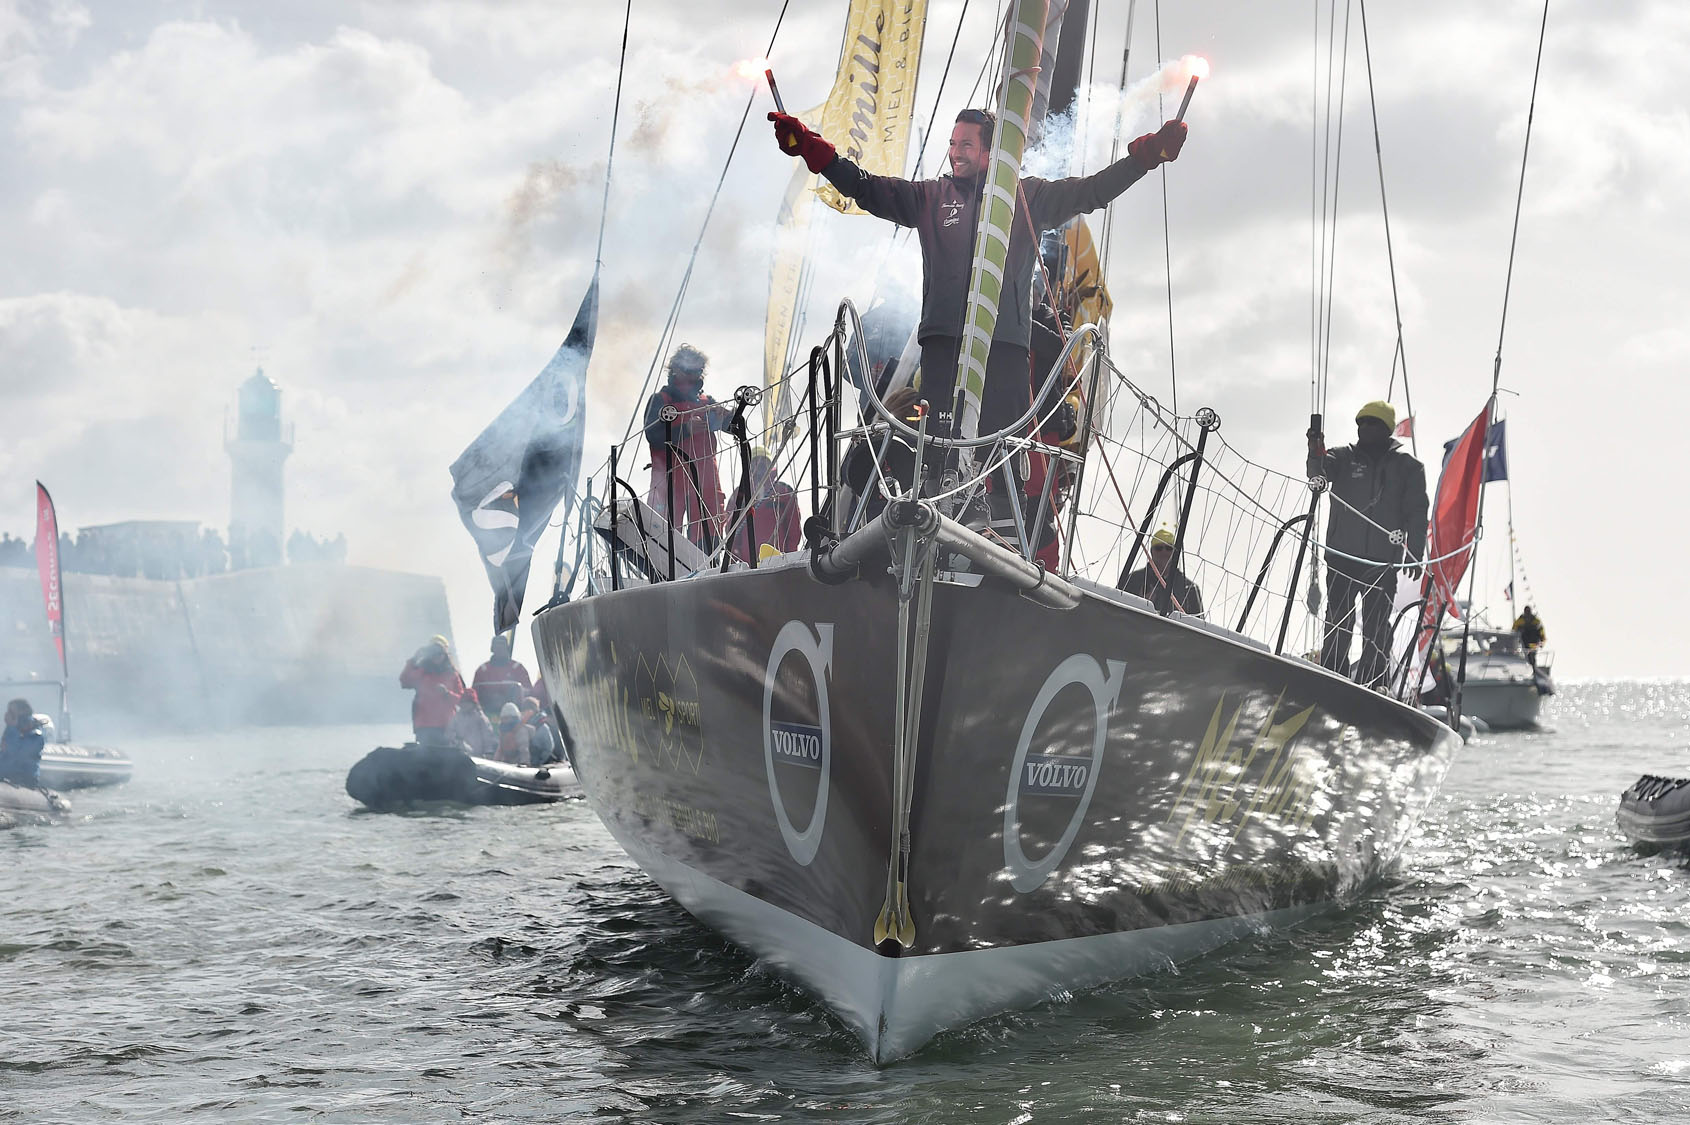 Vendee Globe solo around-the-world sailing race